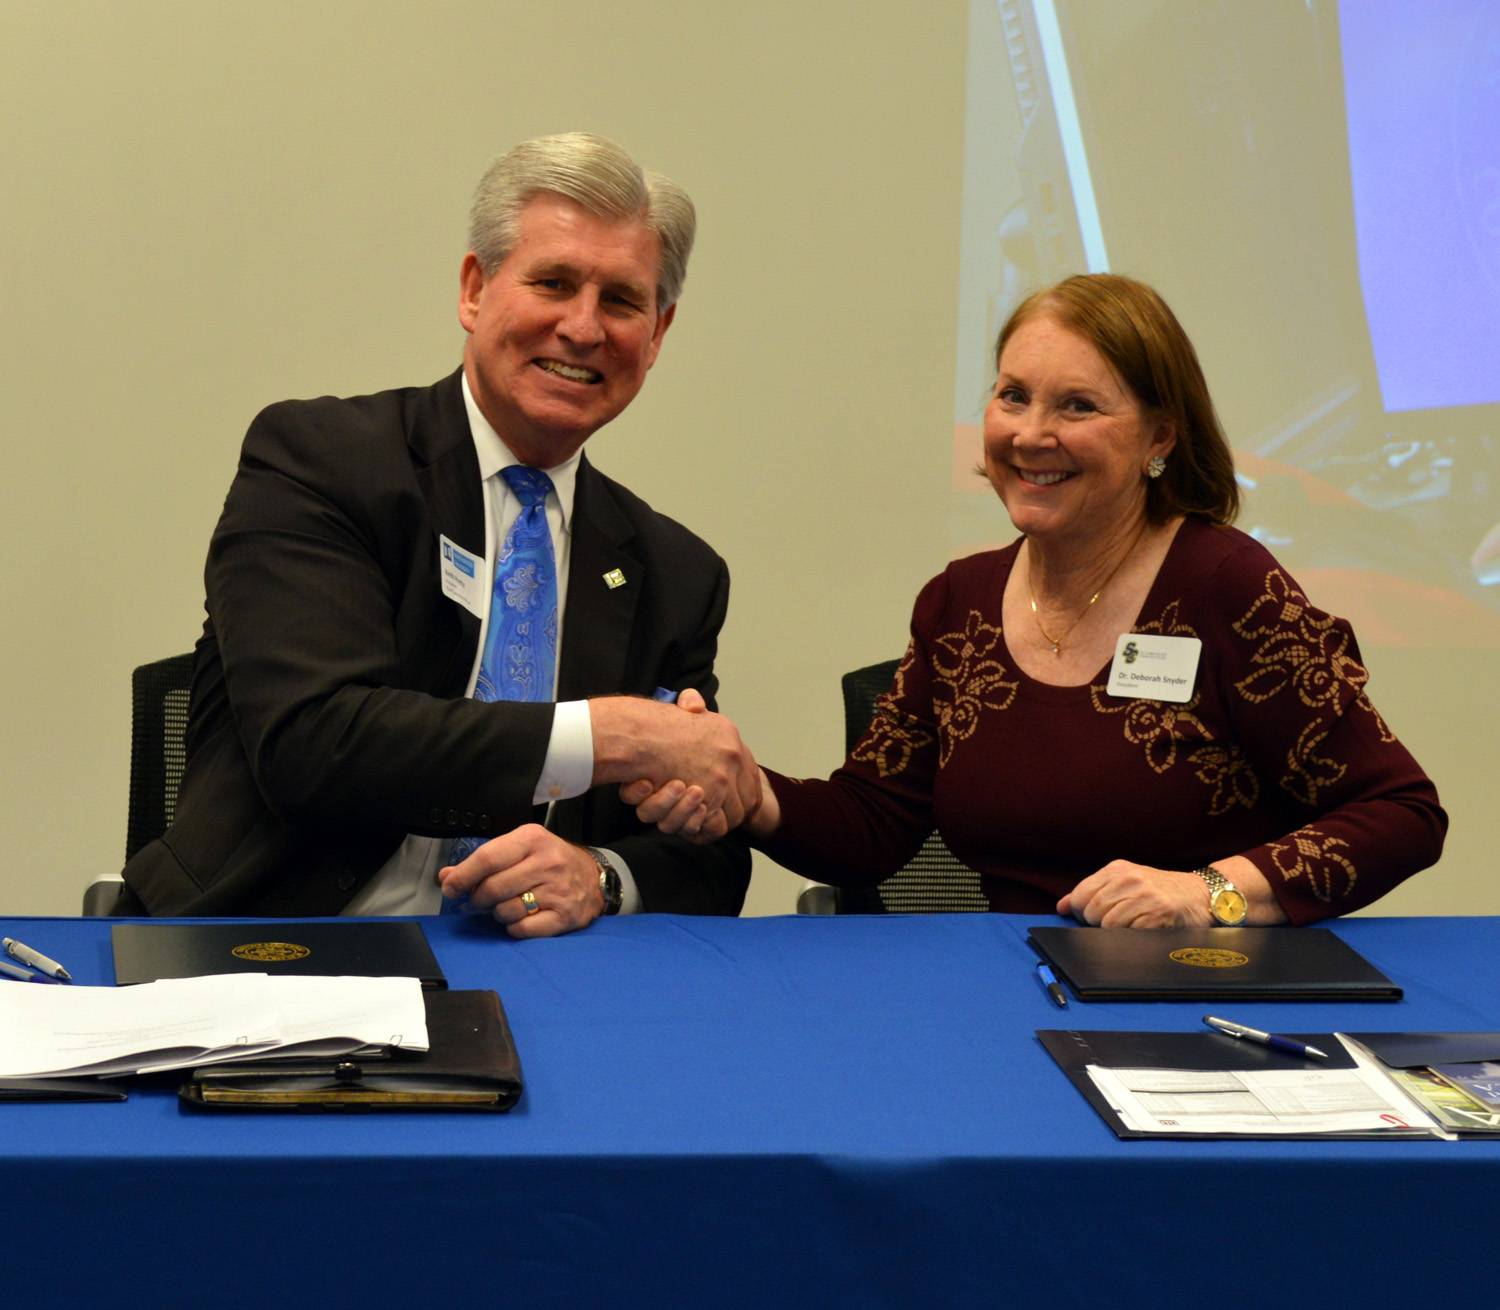 Northwood University President Keith A Pretty and St. Clair County Community College President Deborah Snyder